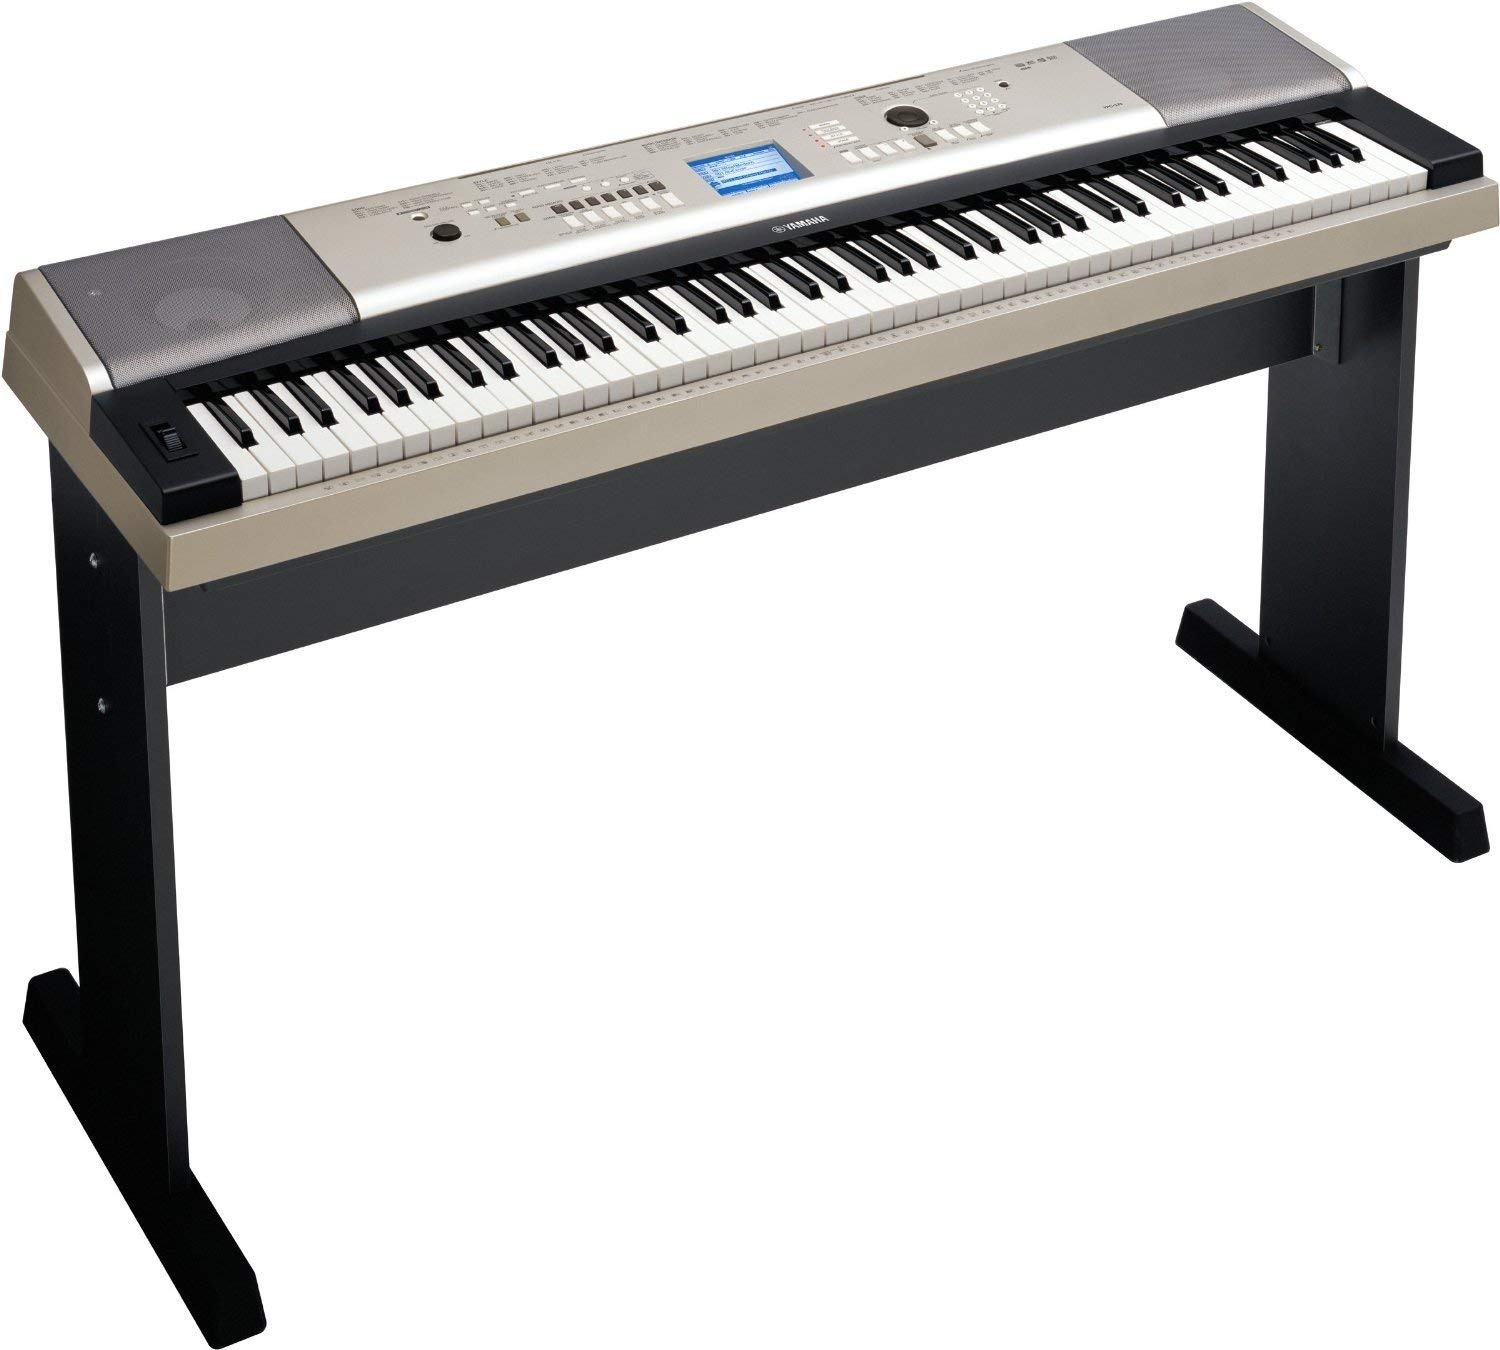 Yamaha YPG-535 Digital Piano Review 2020